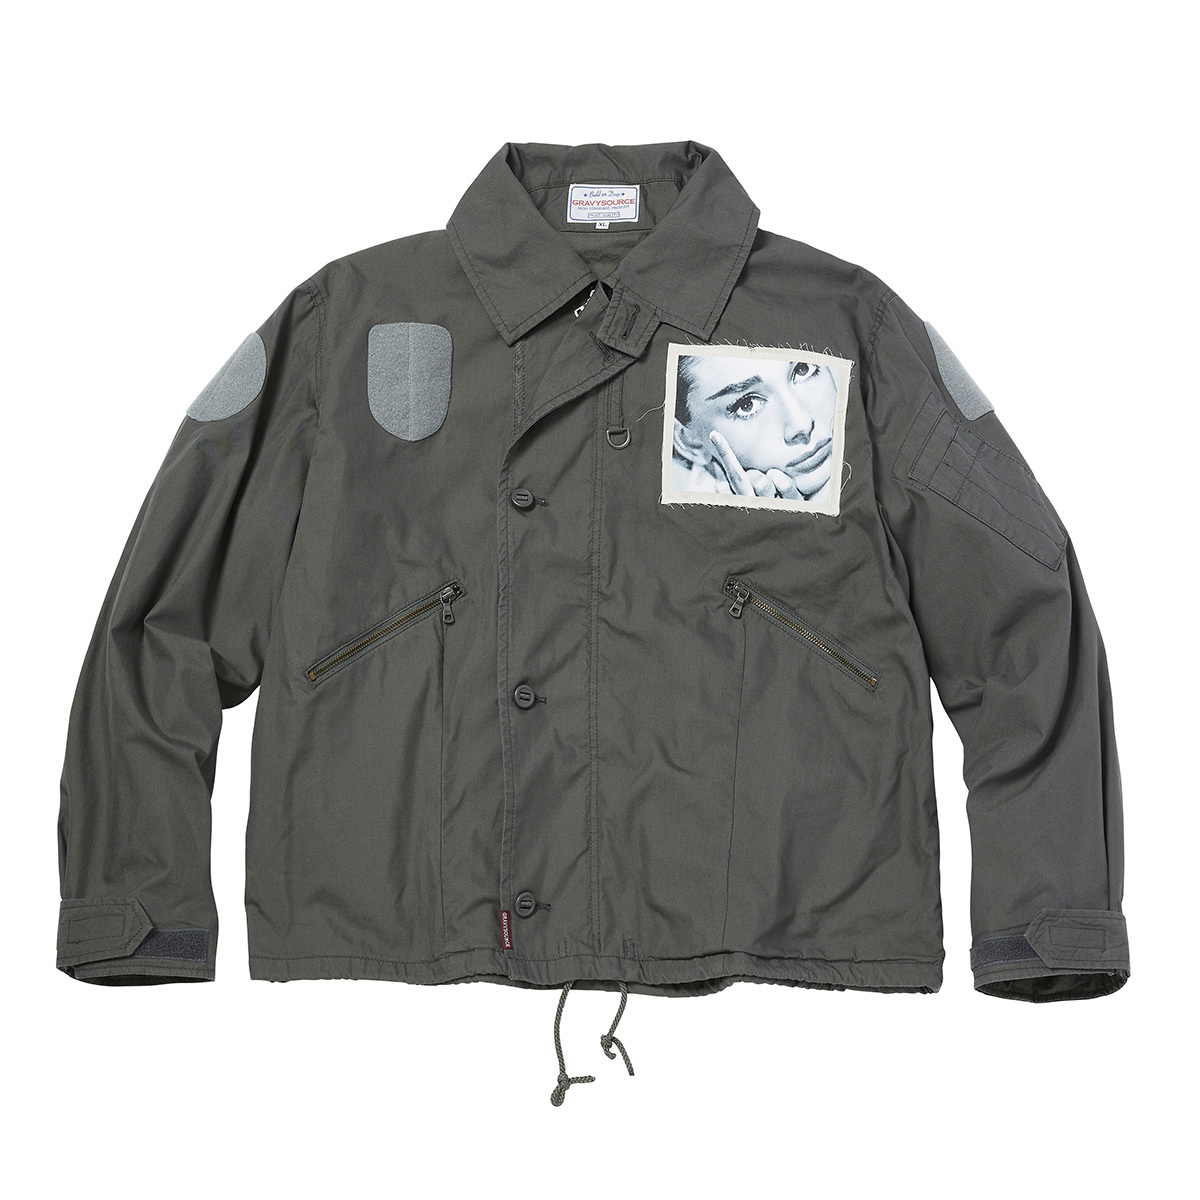 AIRCREW JACKET / GS20-AJK03